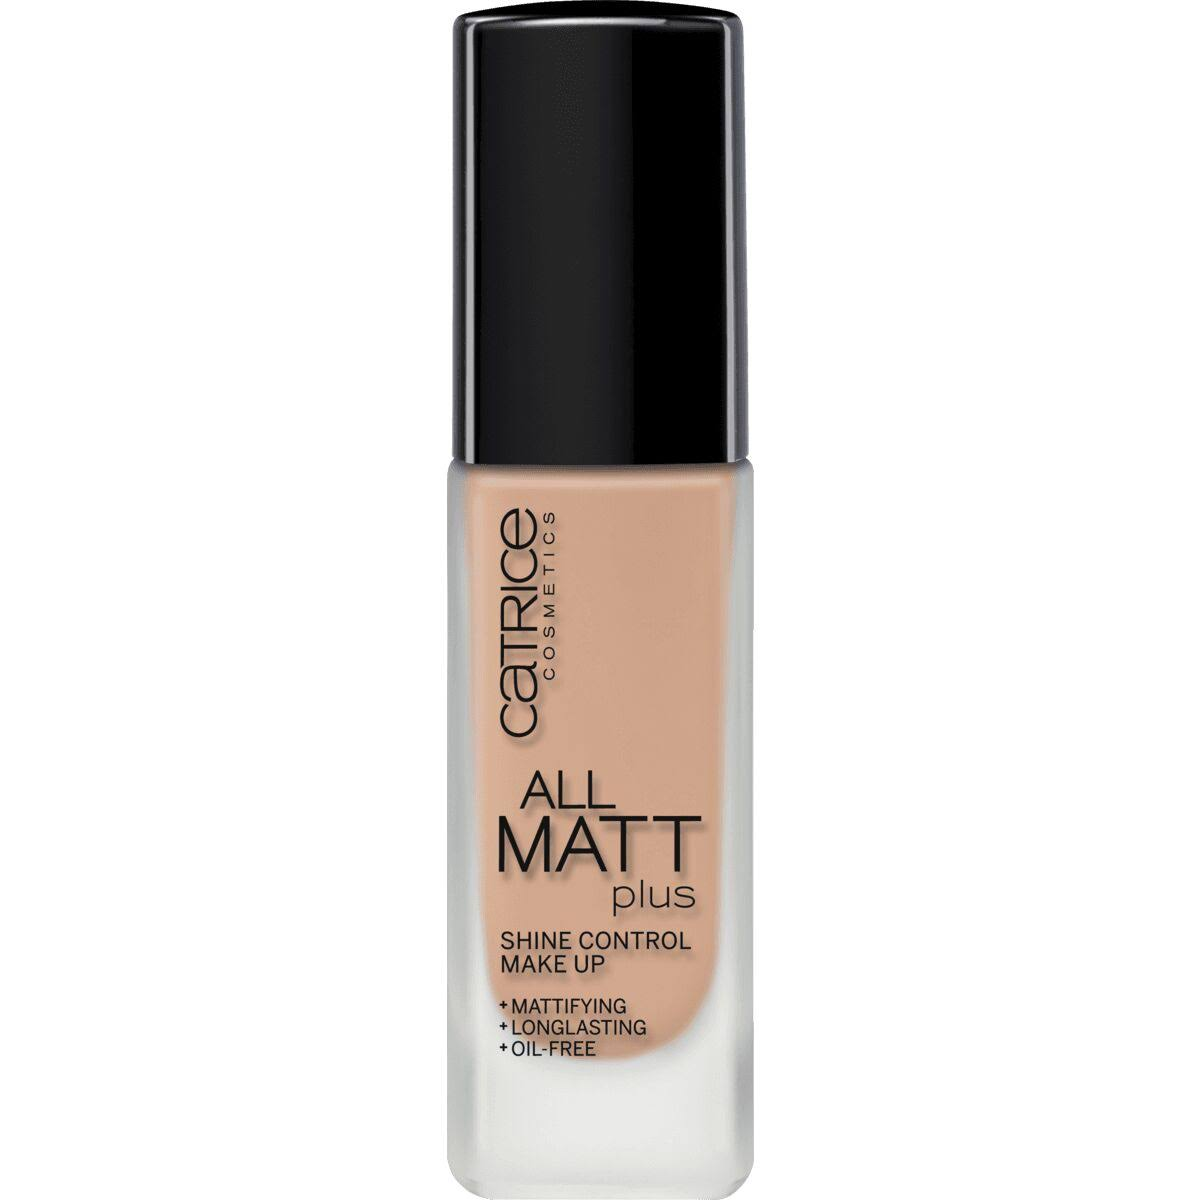 Catrice All Matt Plus Shine Control Make-up Nude Beige 020 200 G